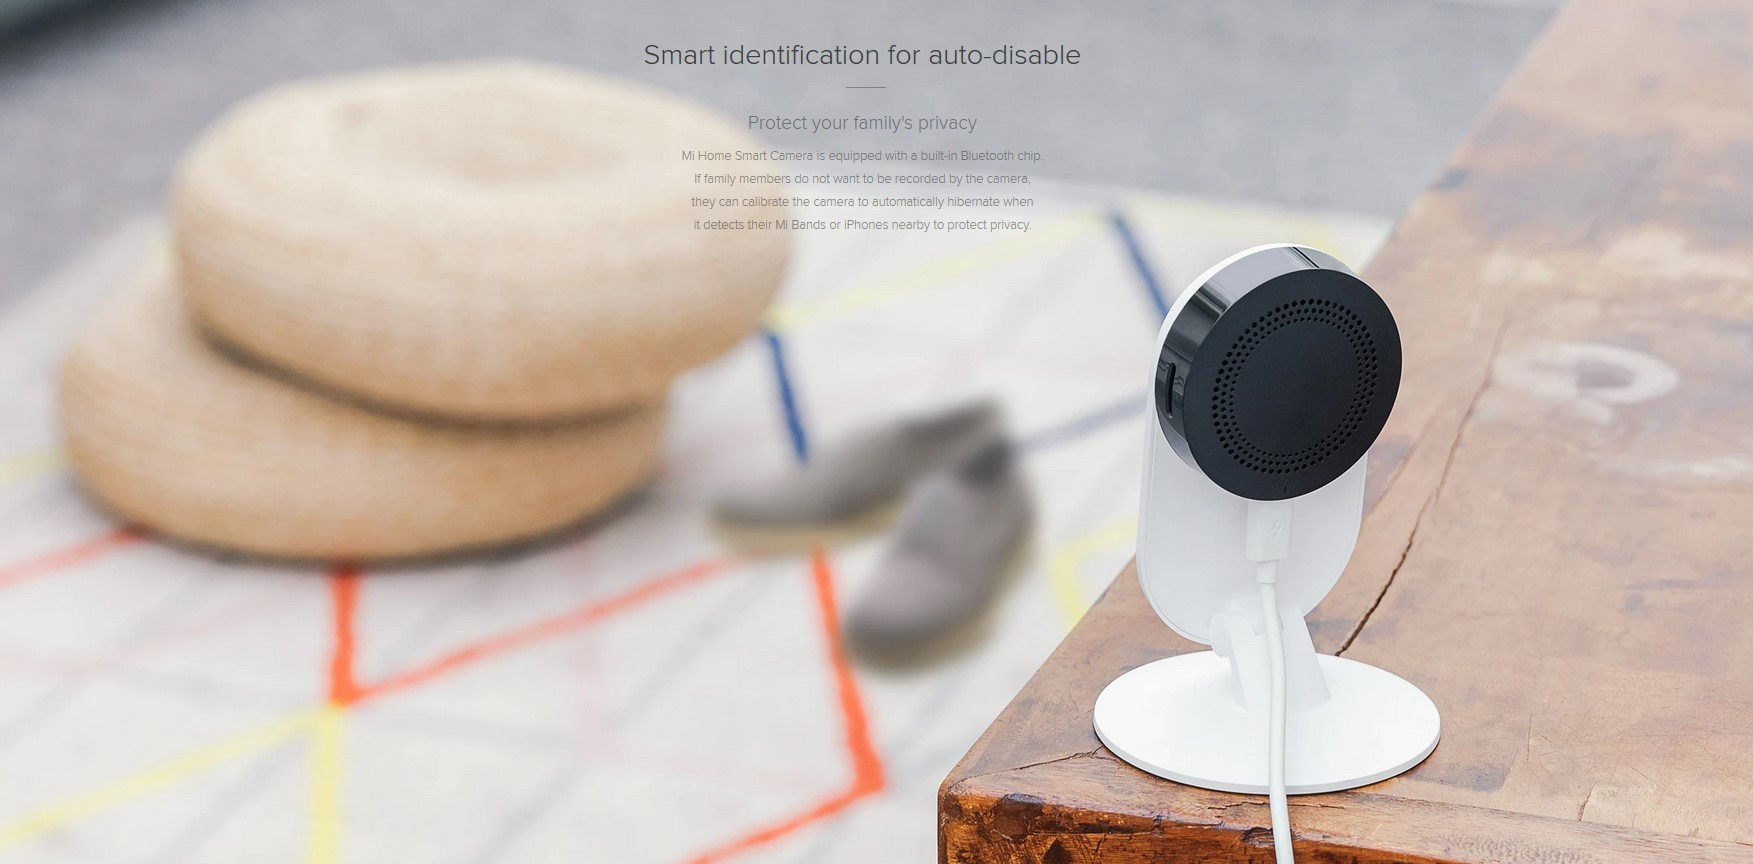 https://delshop.bg/image/catalog/ip%20cameras/2019/xiaomi%20mi%20home%20camera%201080-19.jpg